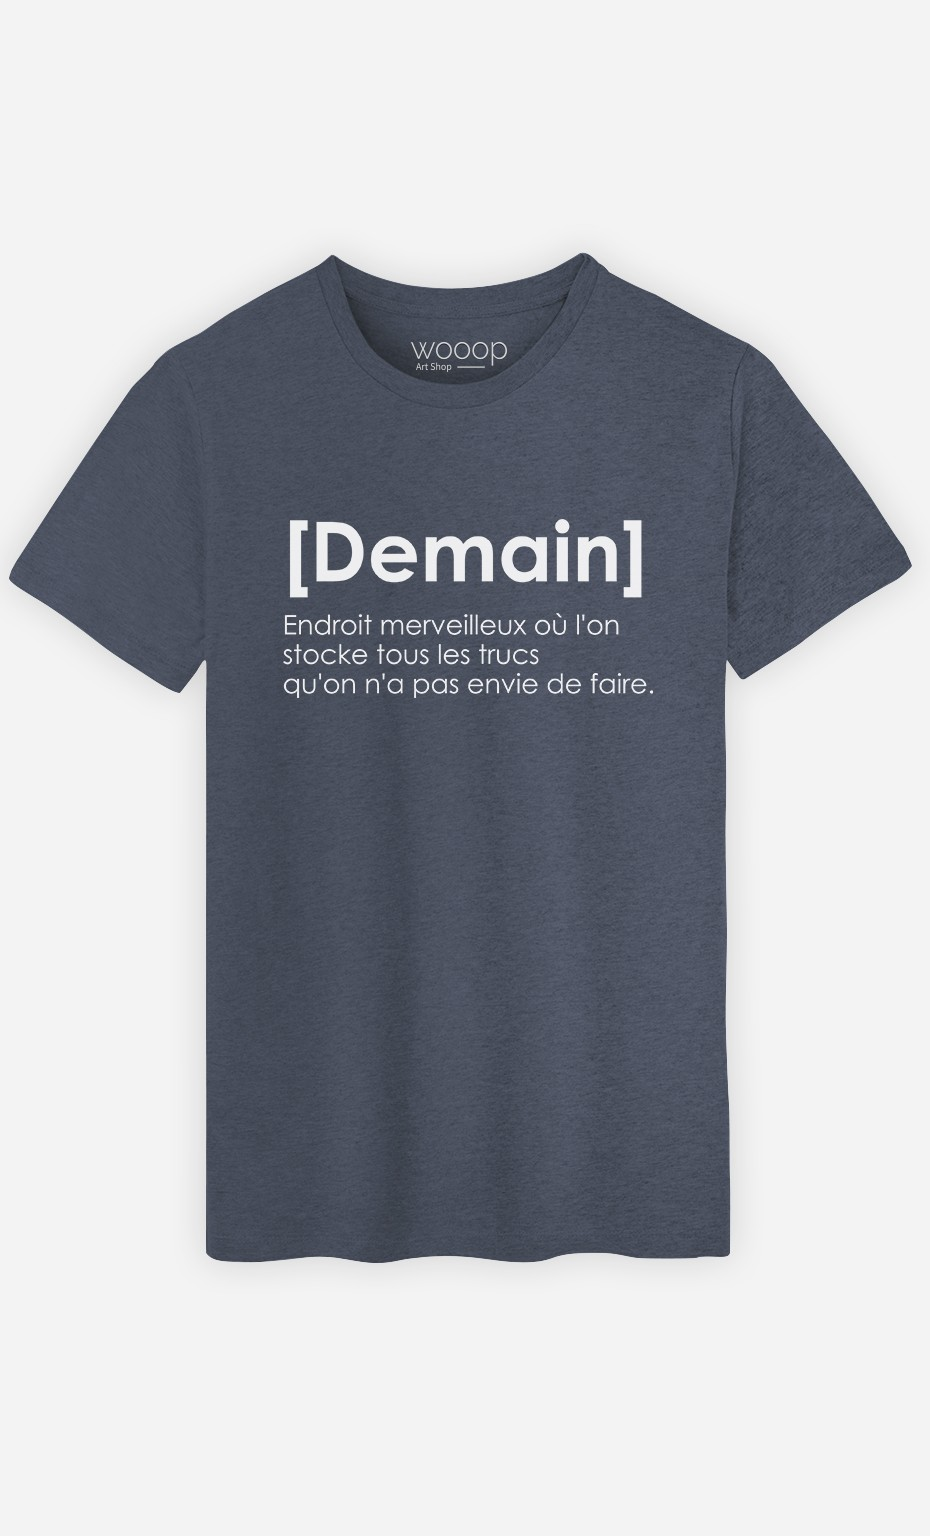 T-Shirt Demain Definition